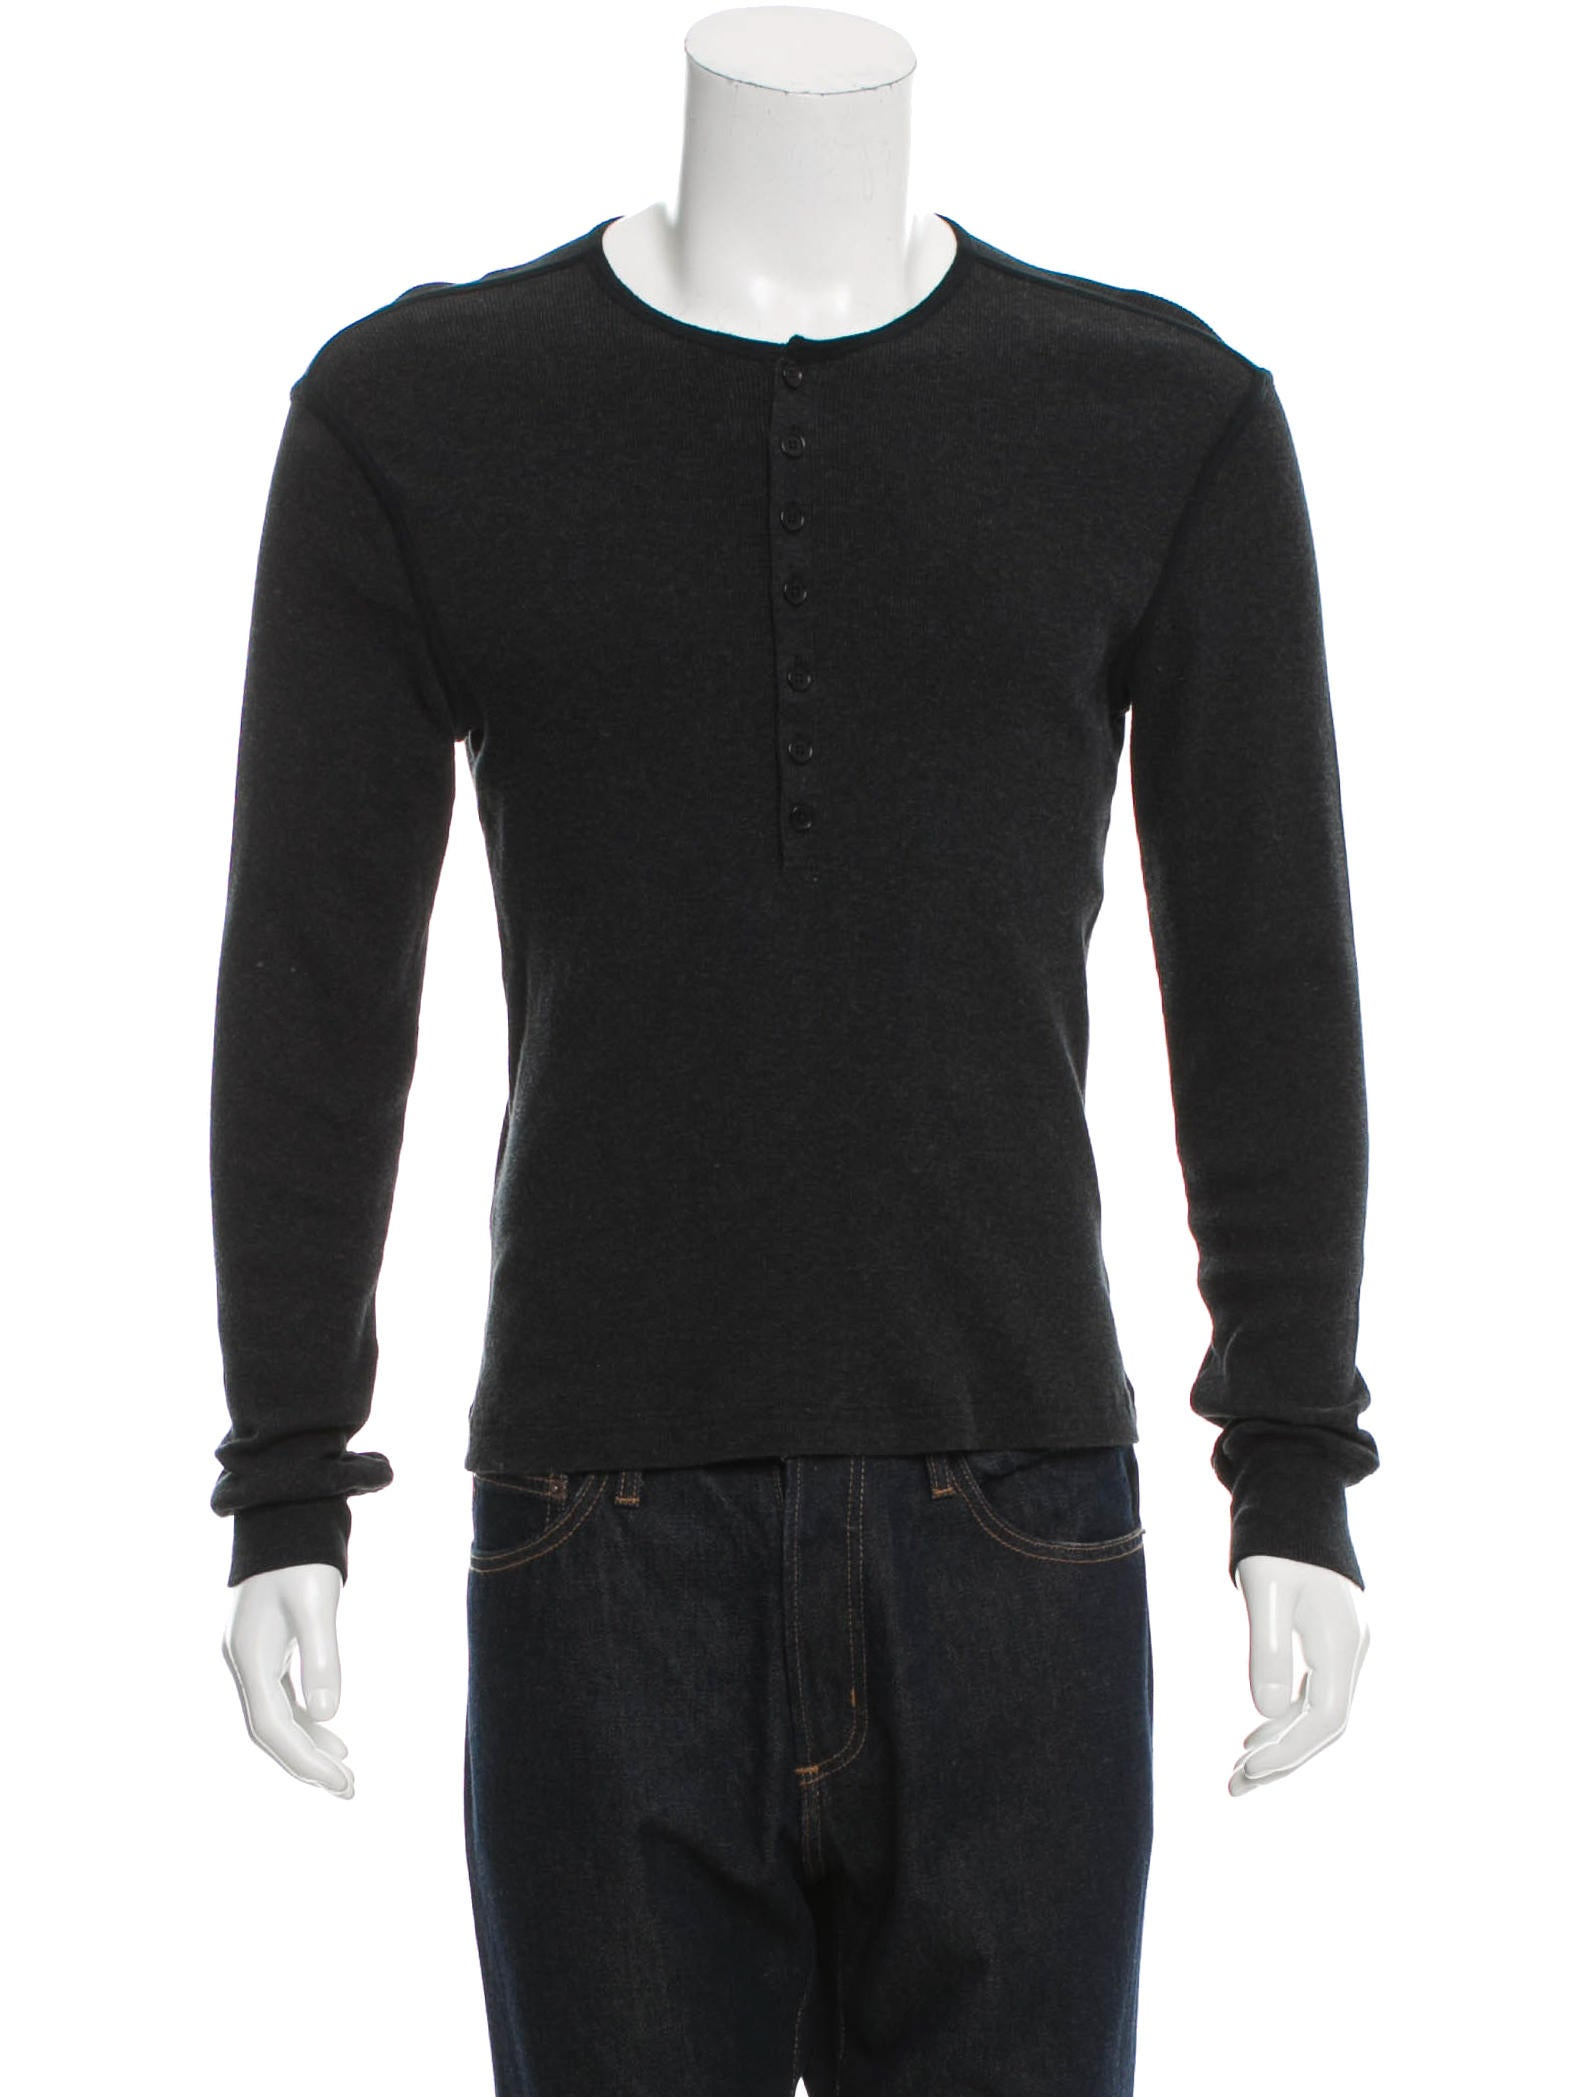 John Varvatos Rib Knit Henley Sweater - Clothing - JVA23383 The RealReal